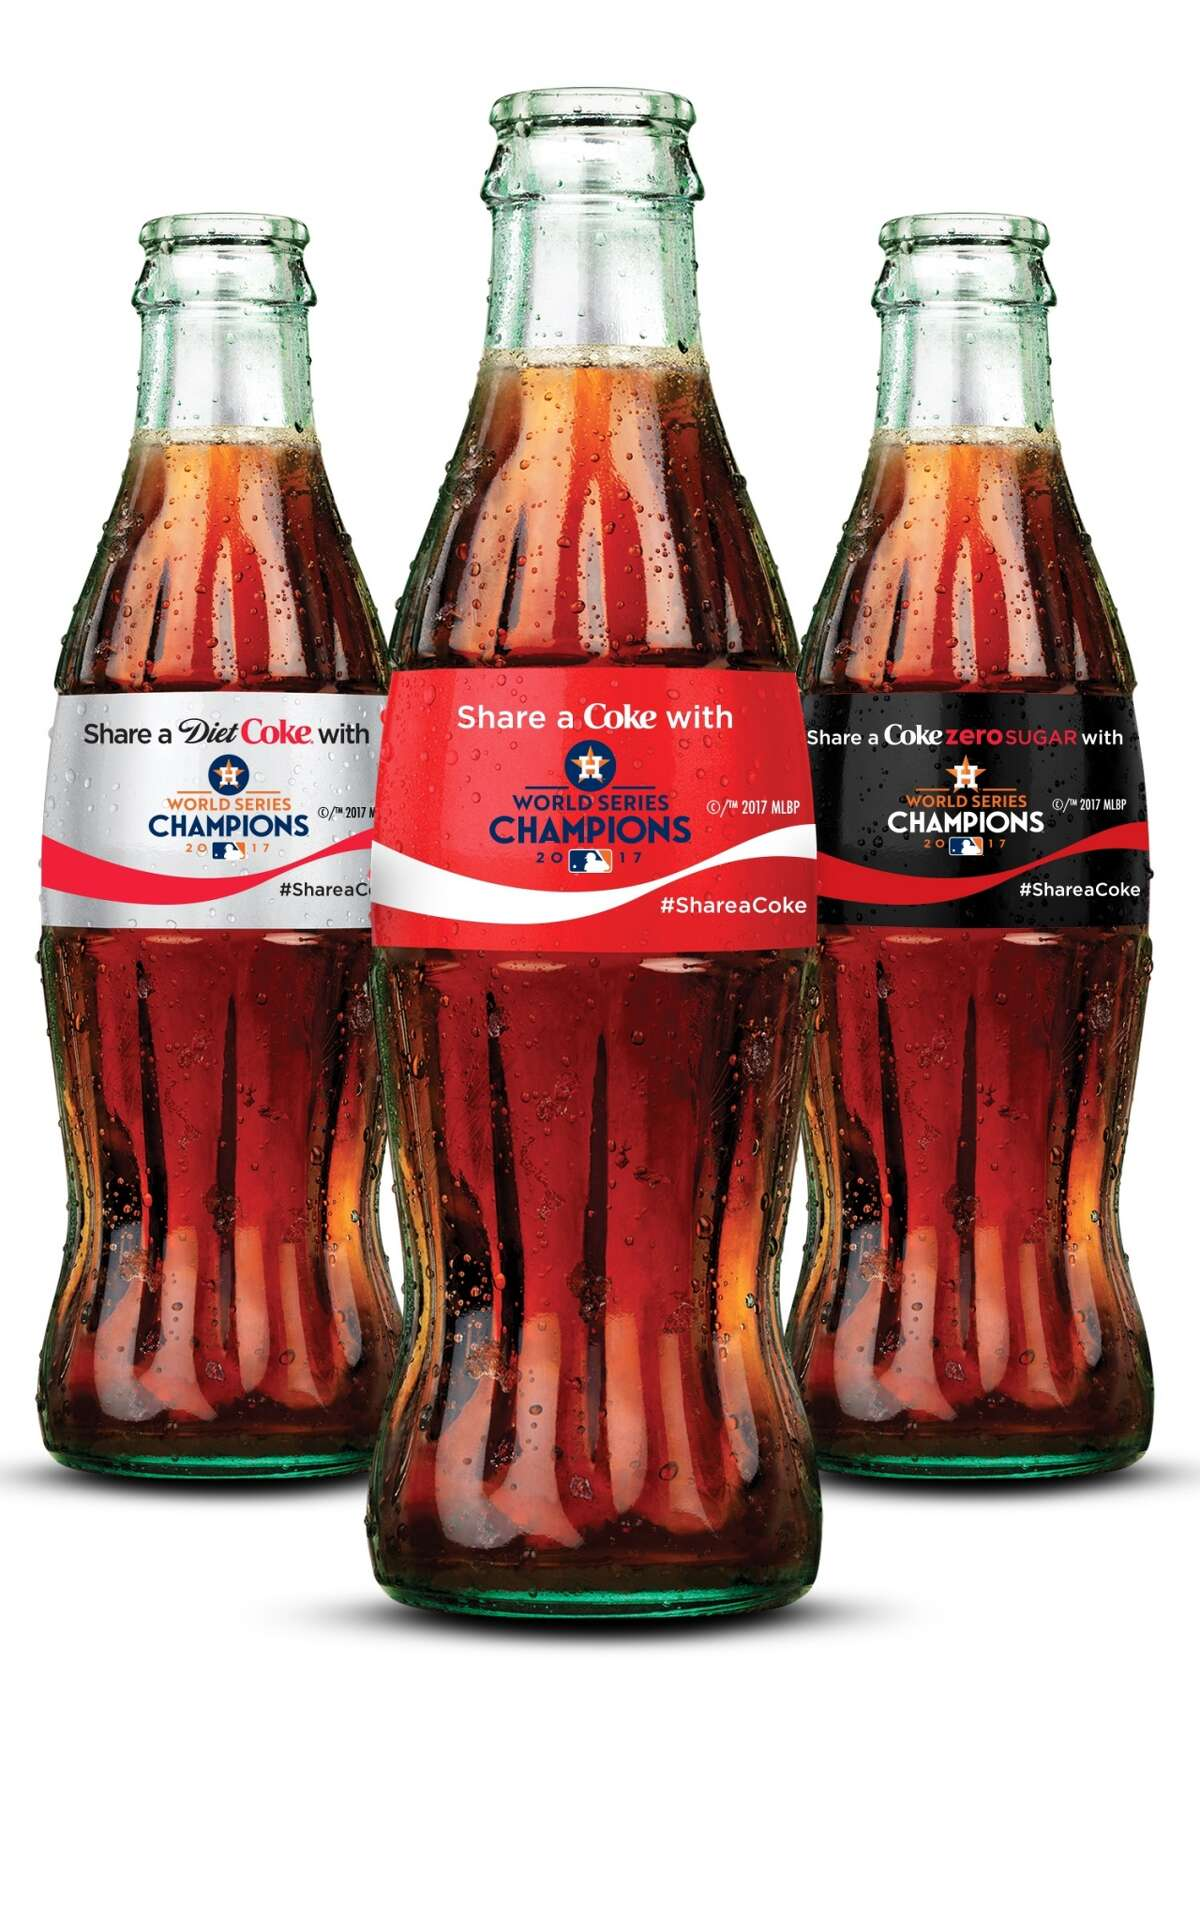 Baseball fans can order commemorative bottles of Coca-Cola products celebrating the Astros World Series championship.